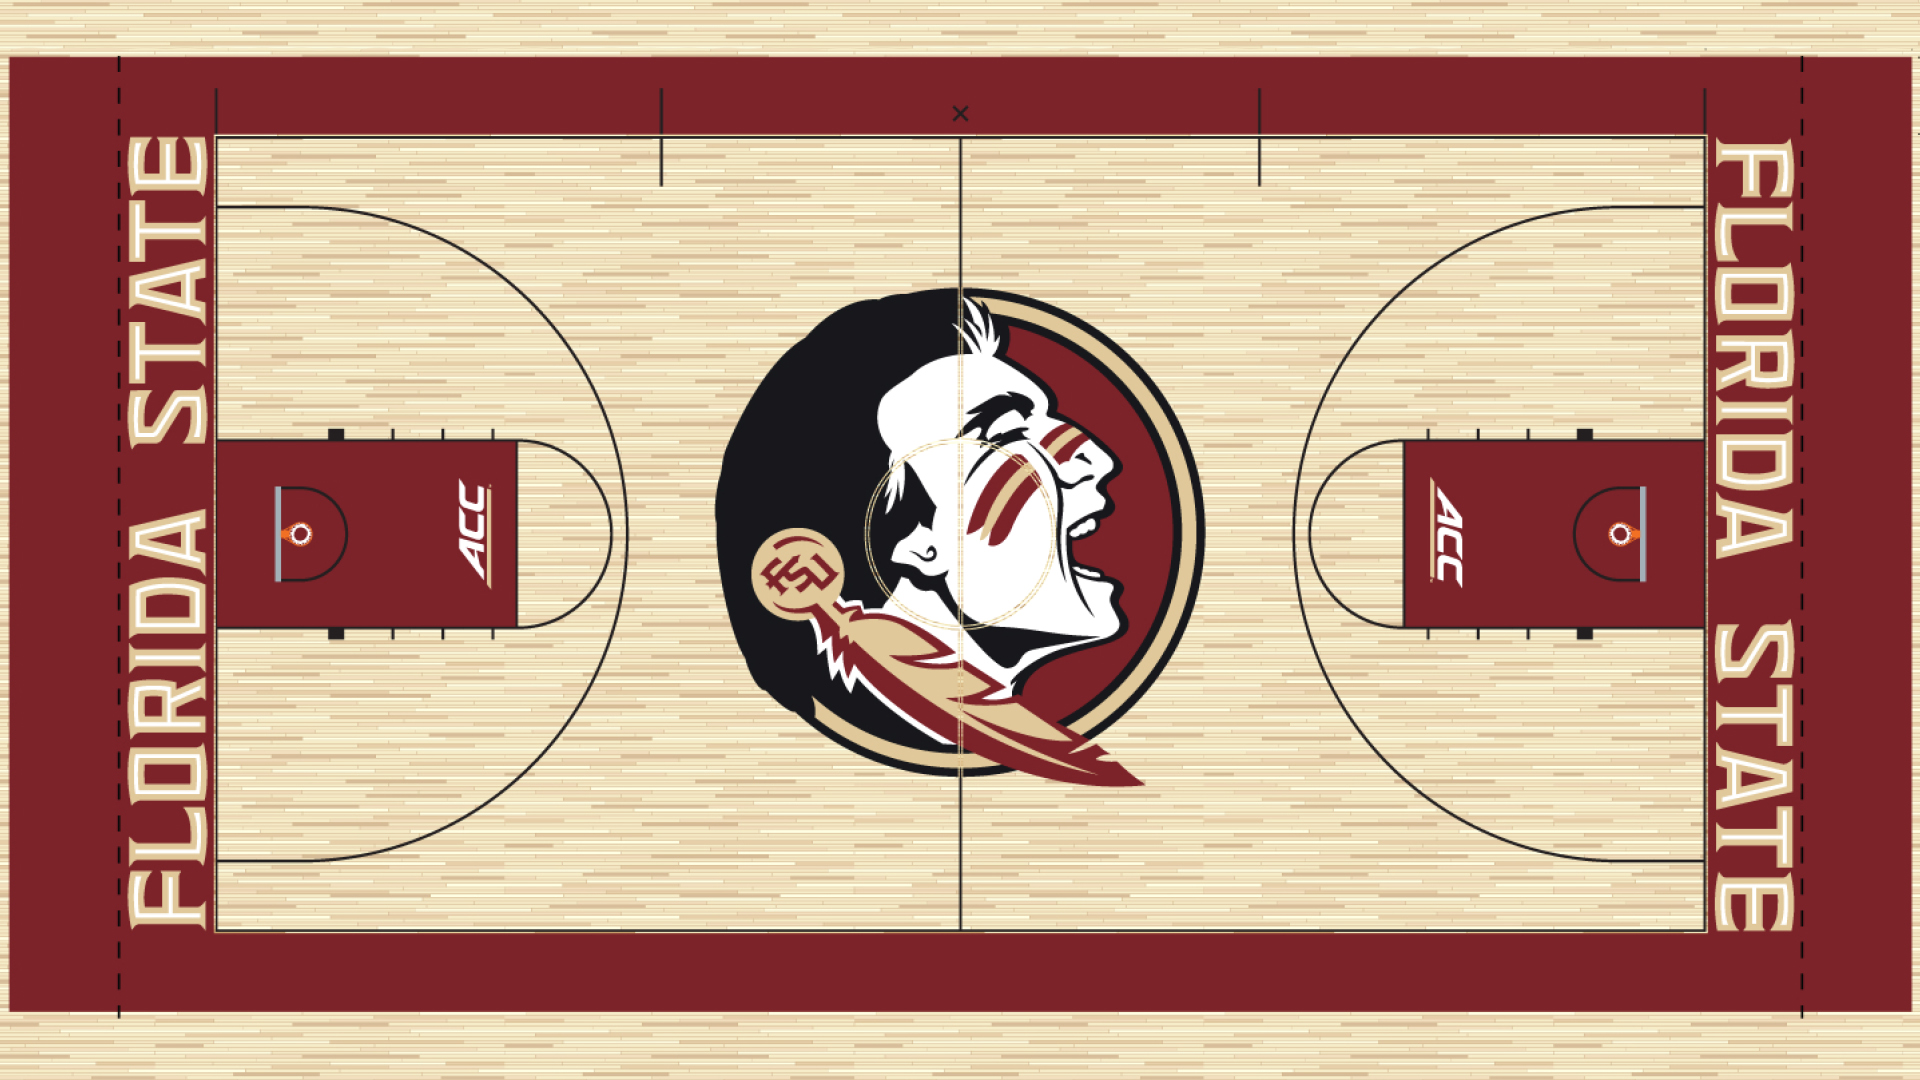 Basketballcourt Widescreen Football 6 WidescreenFootball2 Seminole Head Garnet